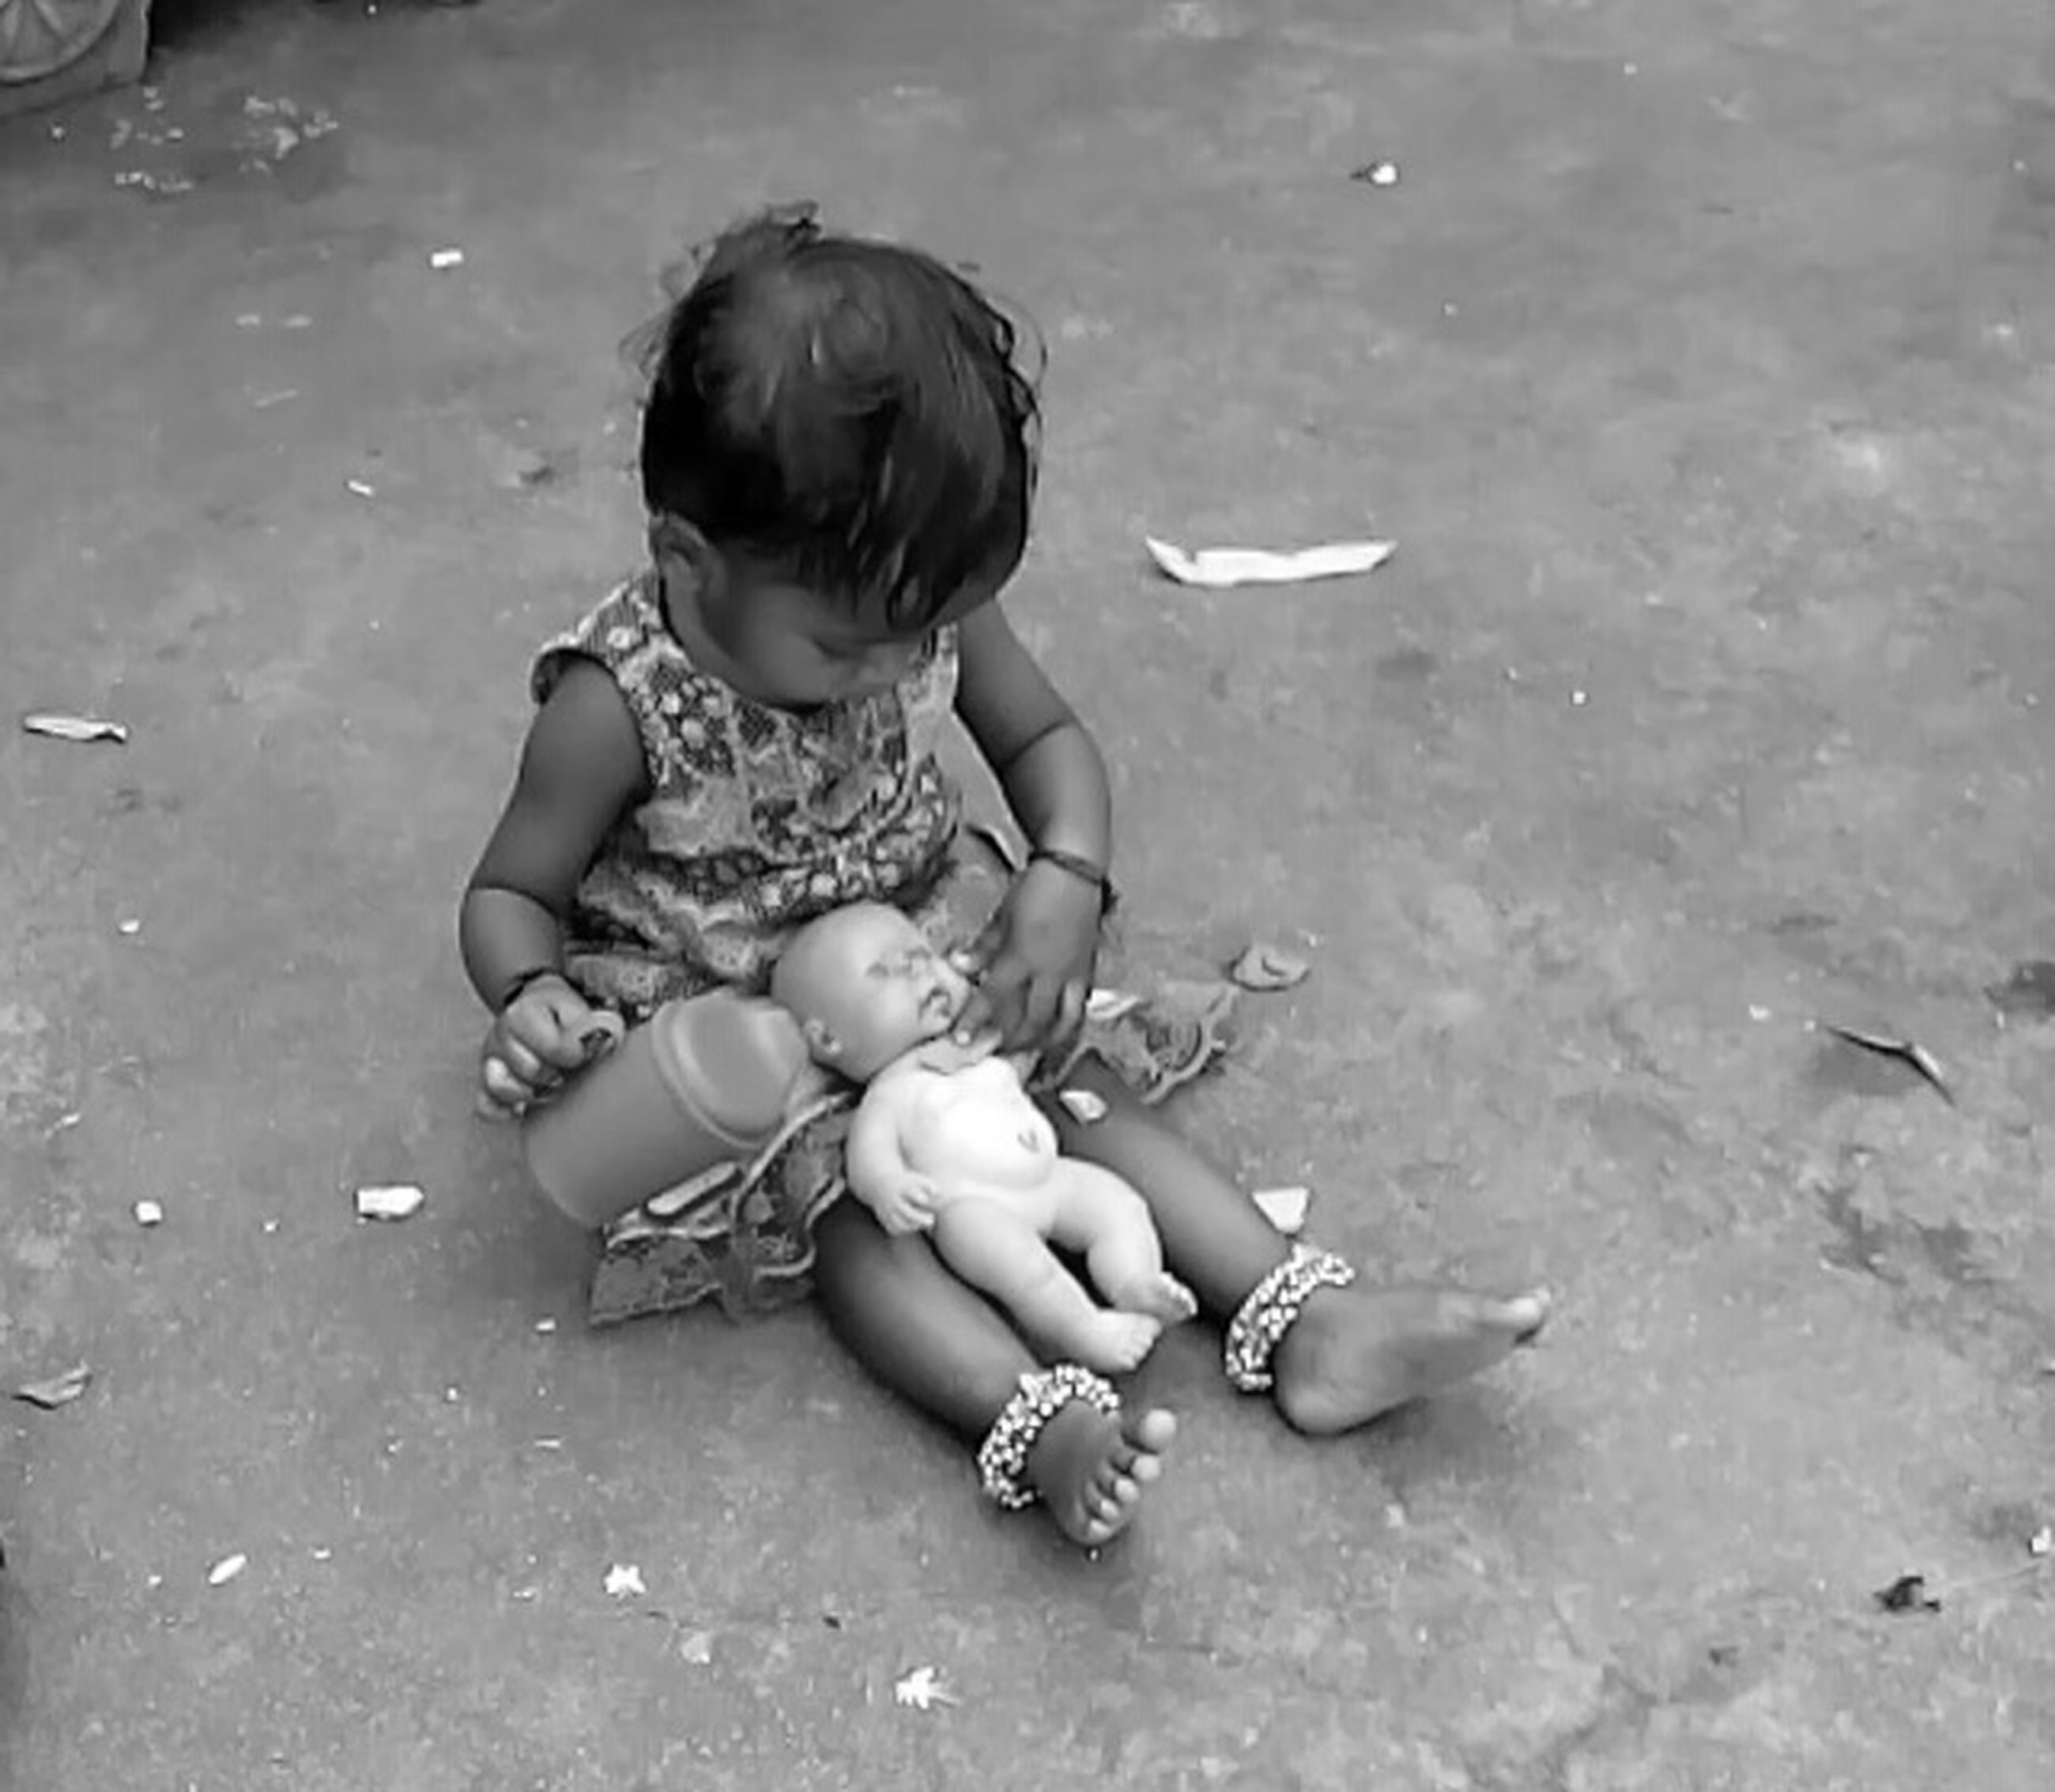 childhood, elementary age, boys, lifestyles, innocence, full length, girls, leisure activity, high angle view, person, cute, casual clothing, playing, playful, toddler, preschool age, holding, baby